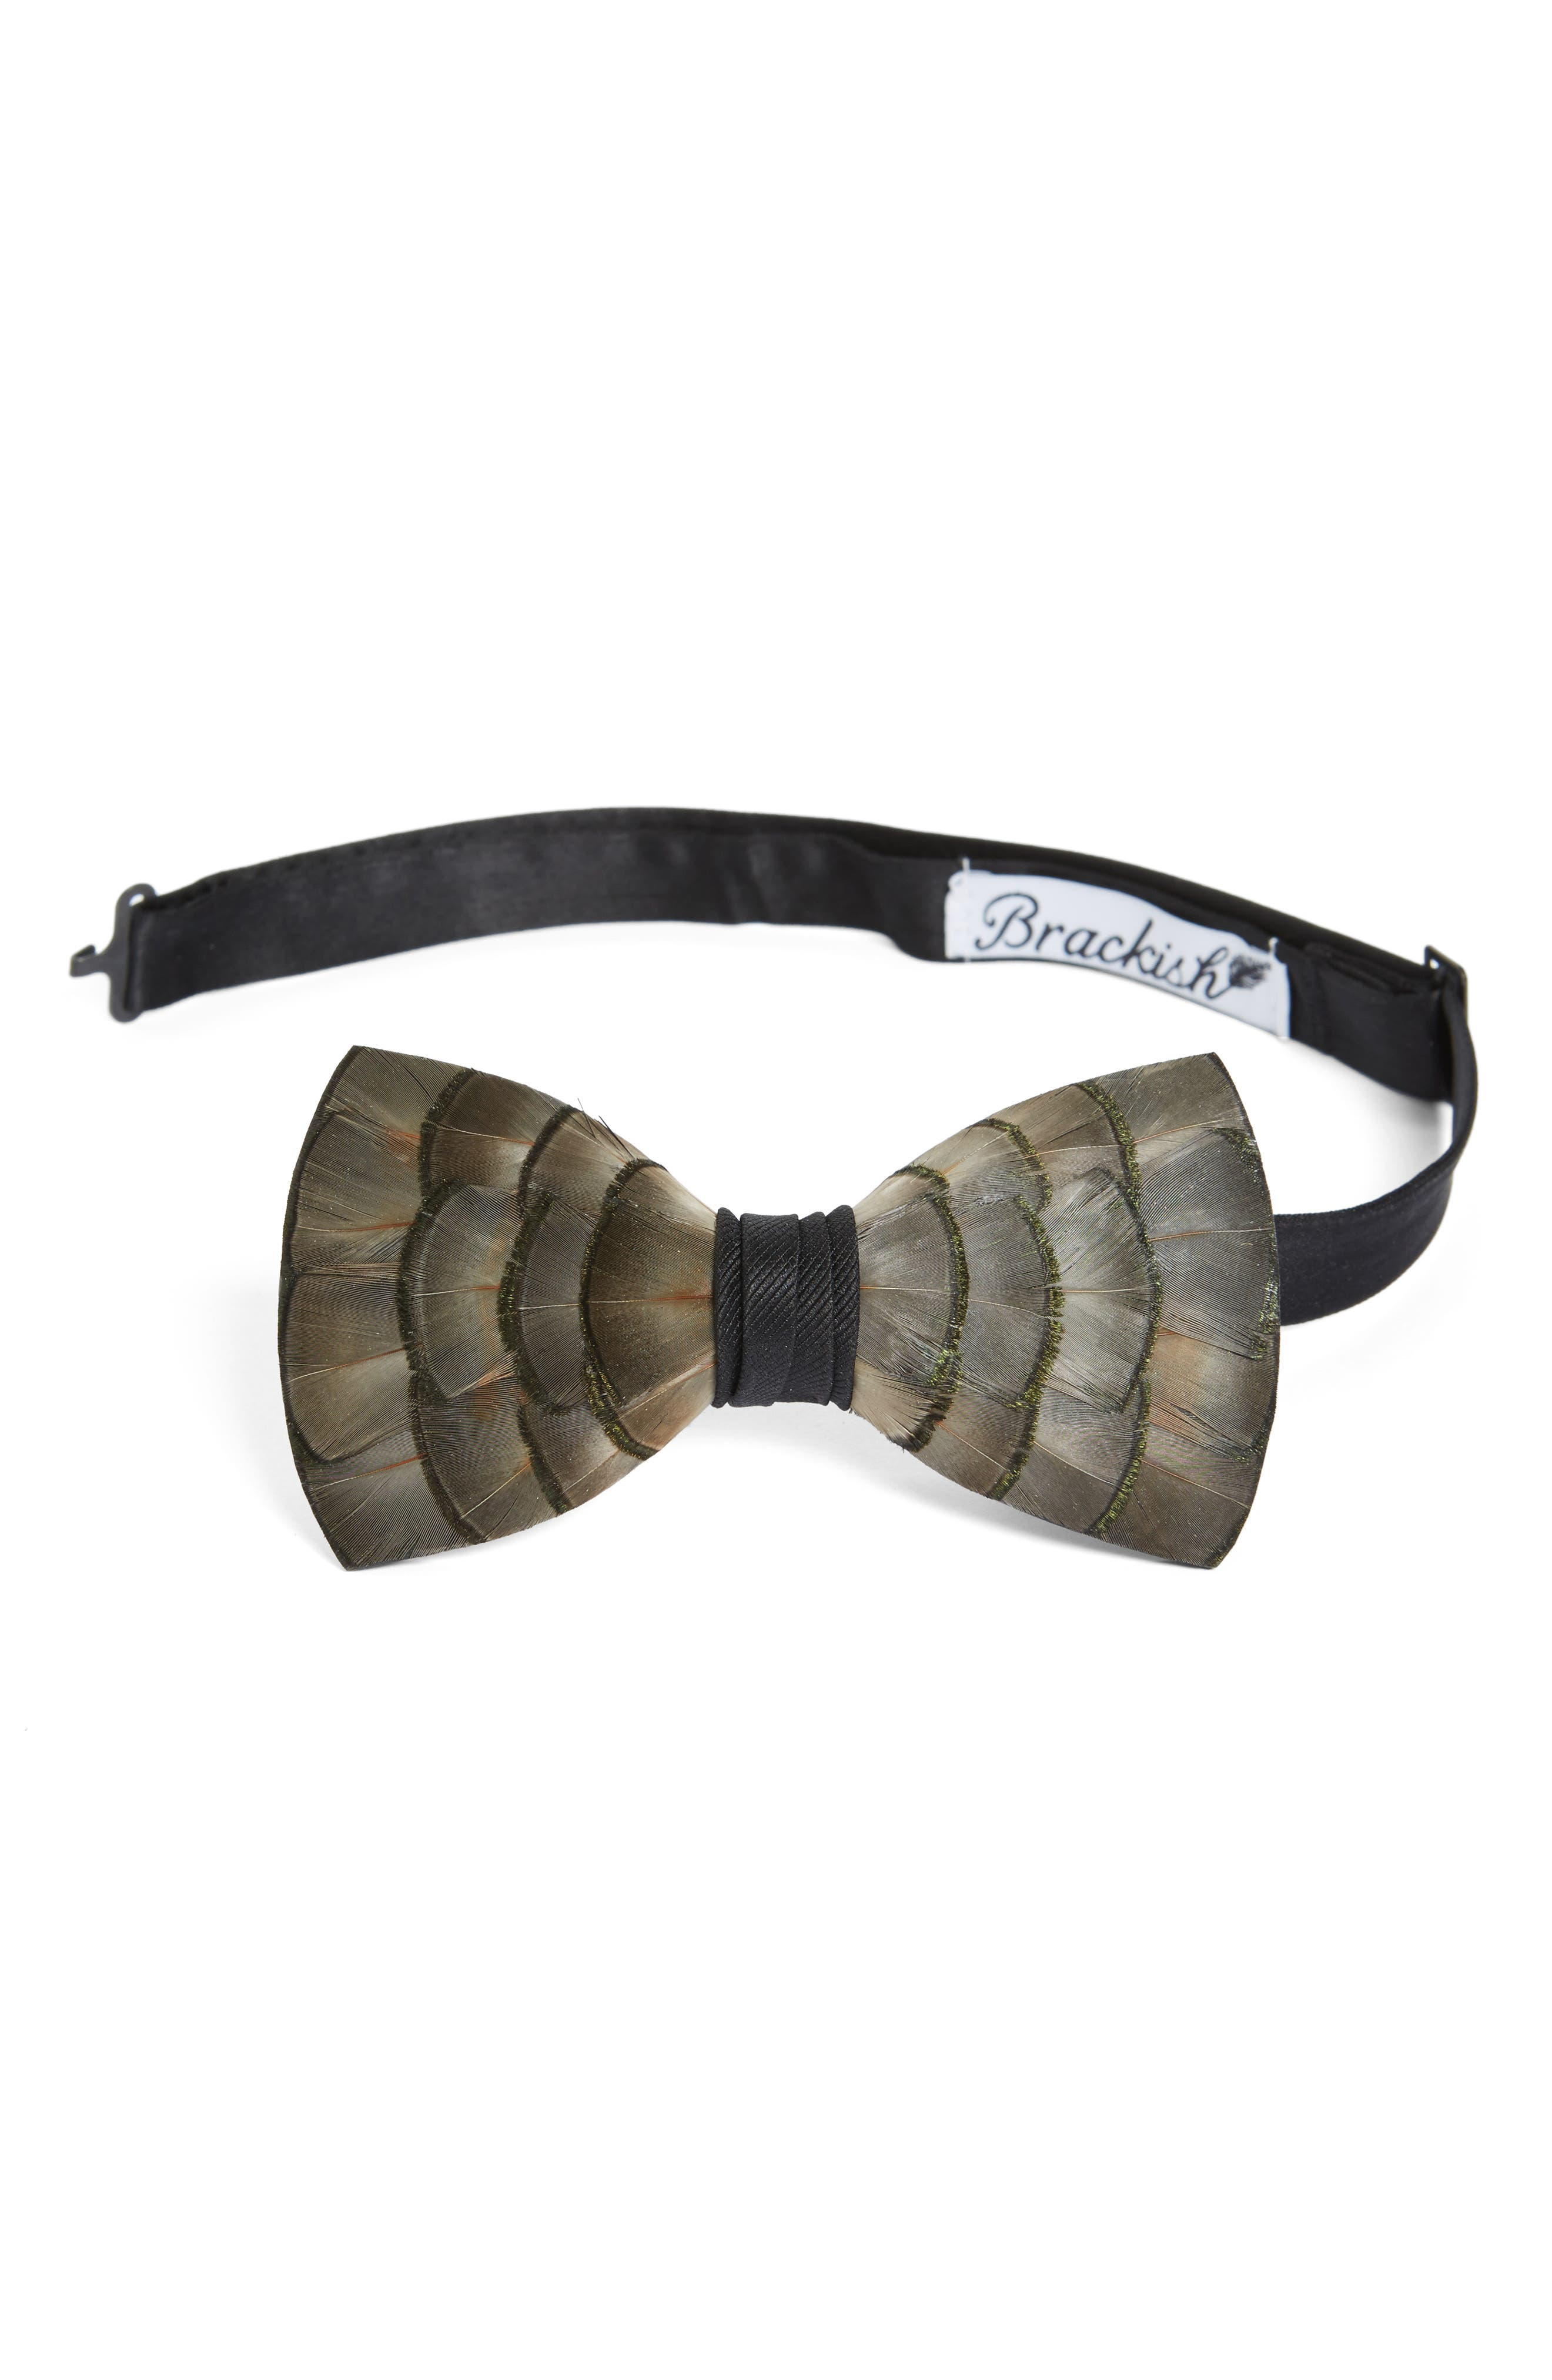 BRACKISH AND BELL Brackish & Bell Lynx Feather Bow Tie